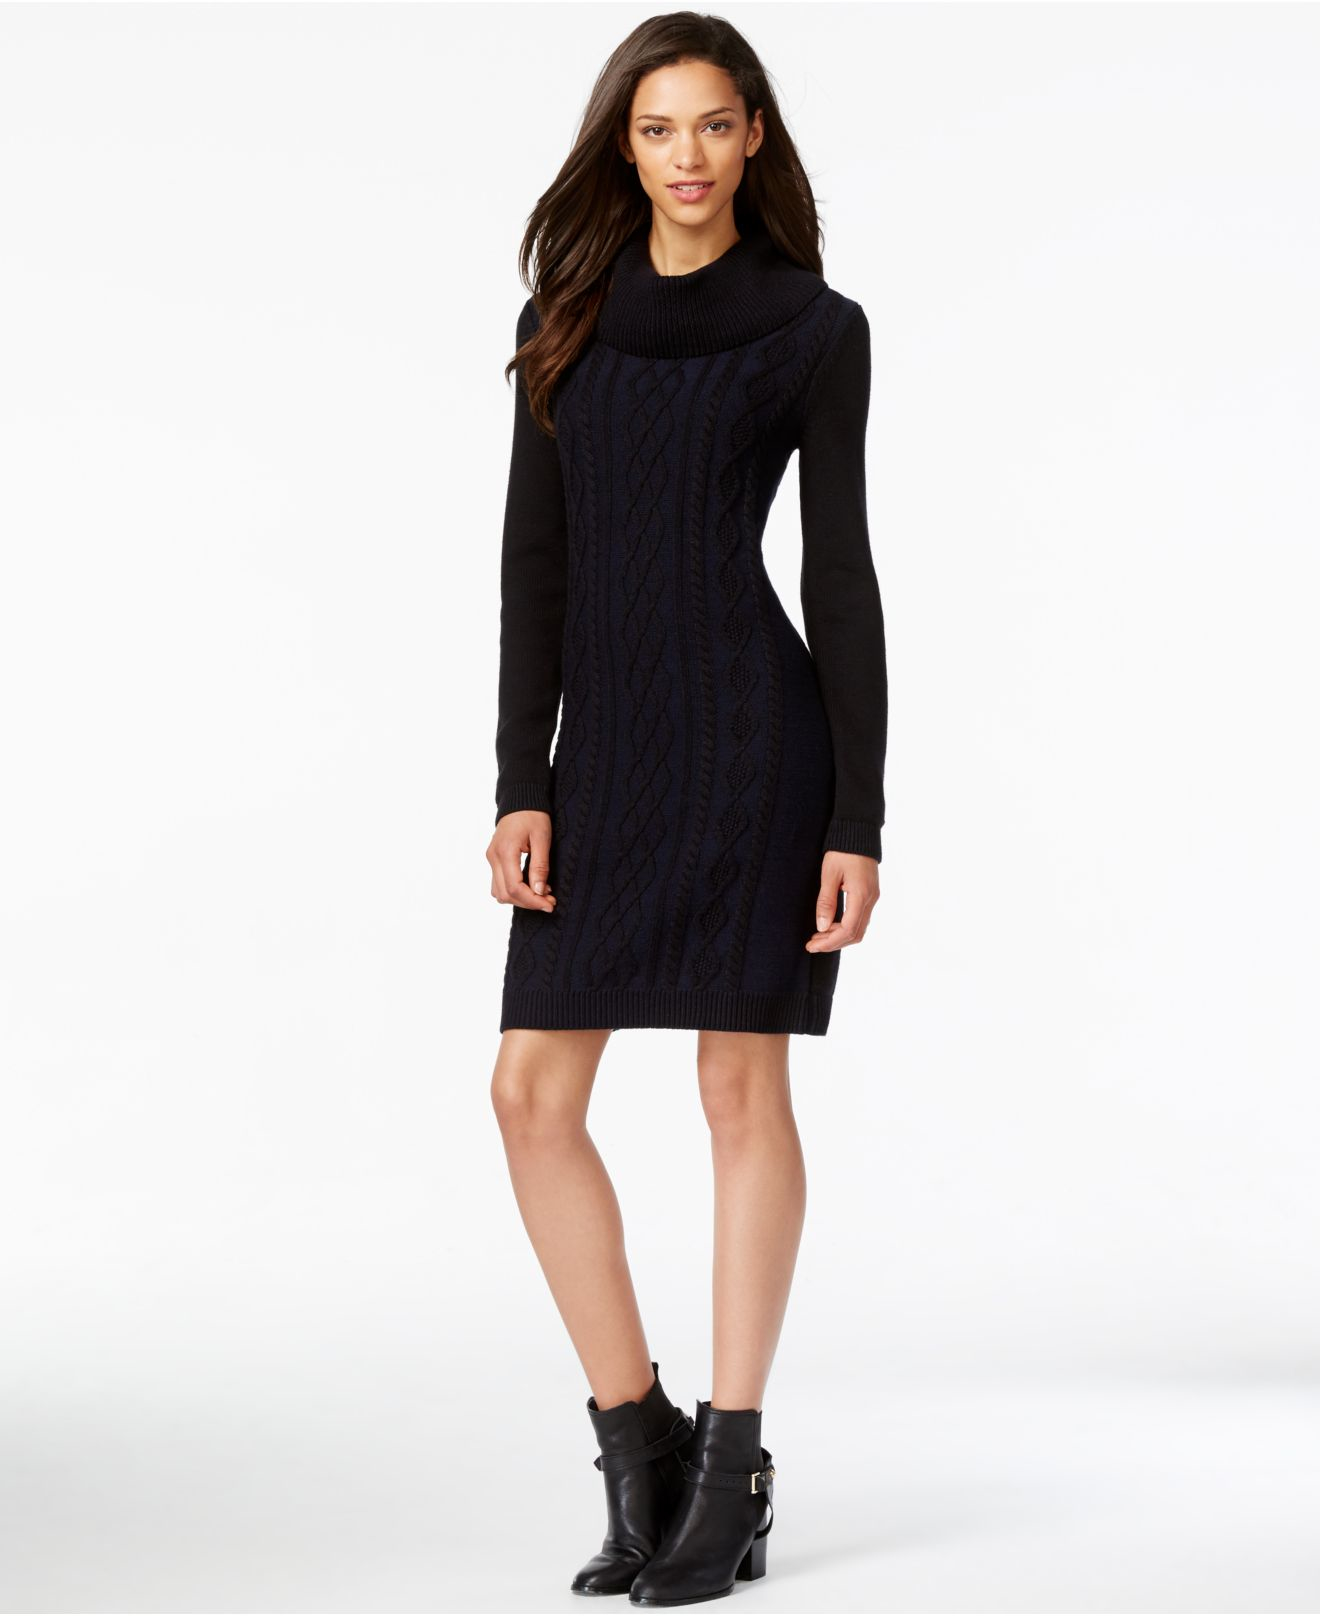 Tommy hilfiger Cowl-neck Cable-knit Sweater Dress in Black | Lyst